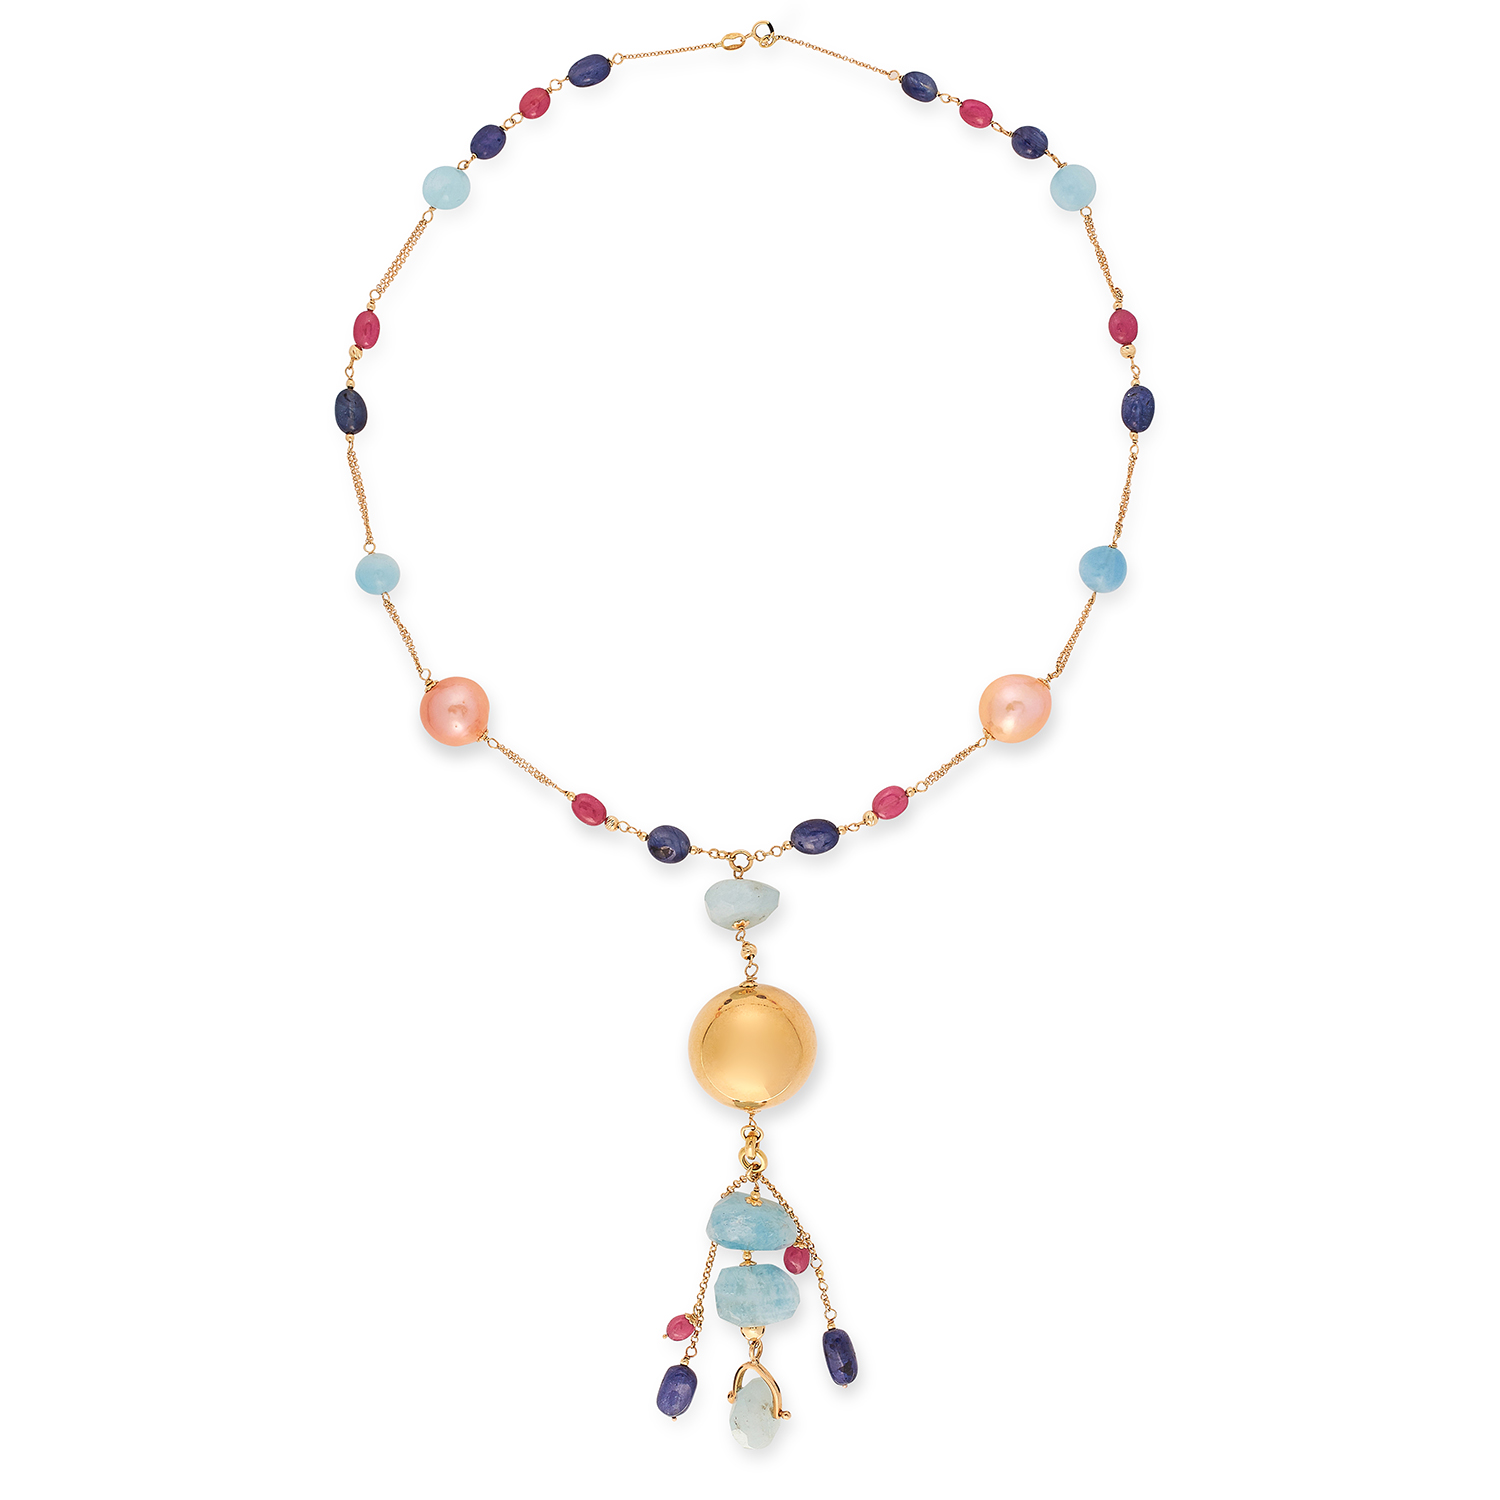 GEMSTONE BEAD NECKLACE set with pearls, pale blue, blue and red gemstone beads, 50cm, 43.3g.